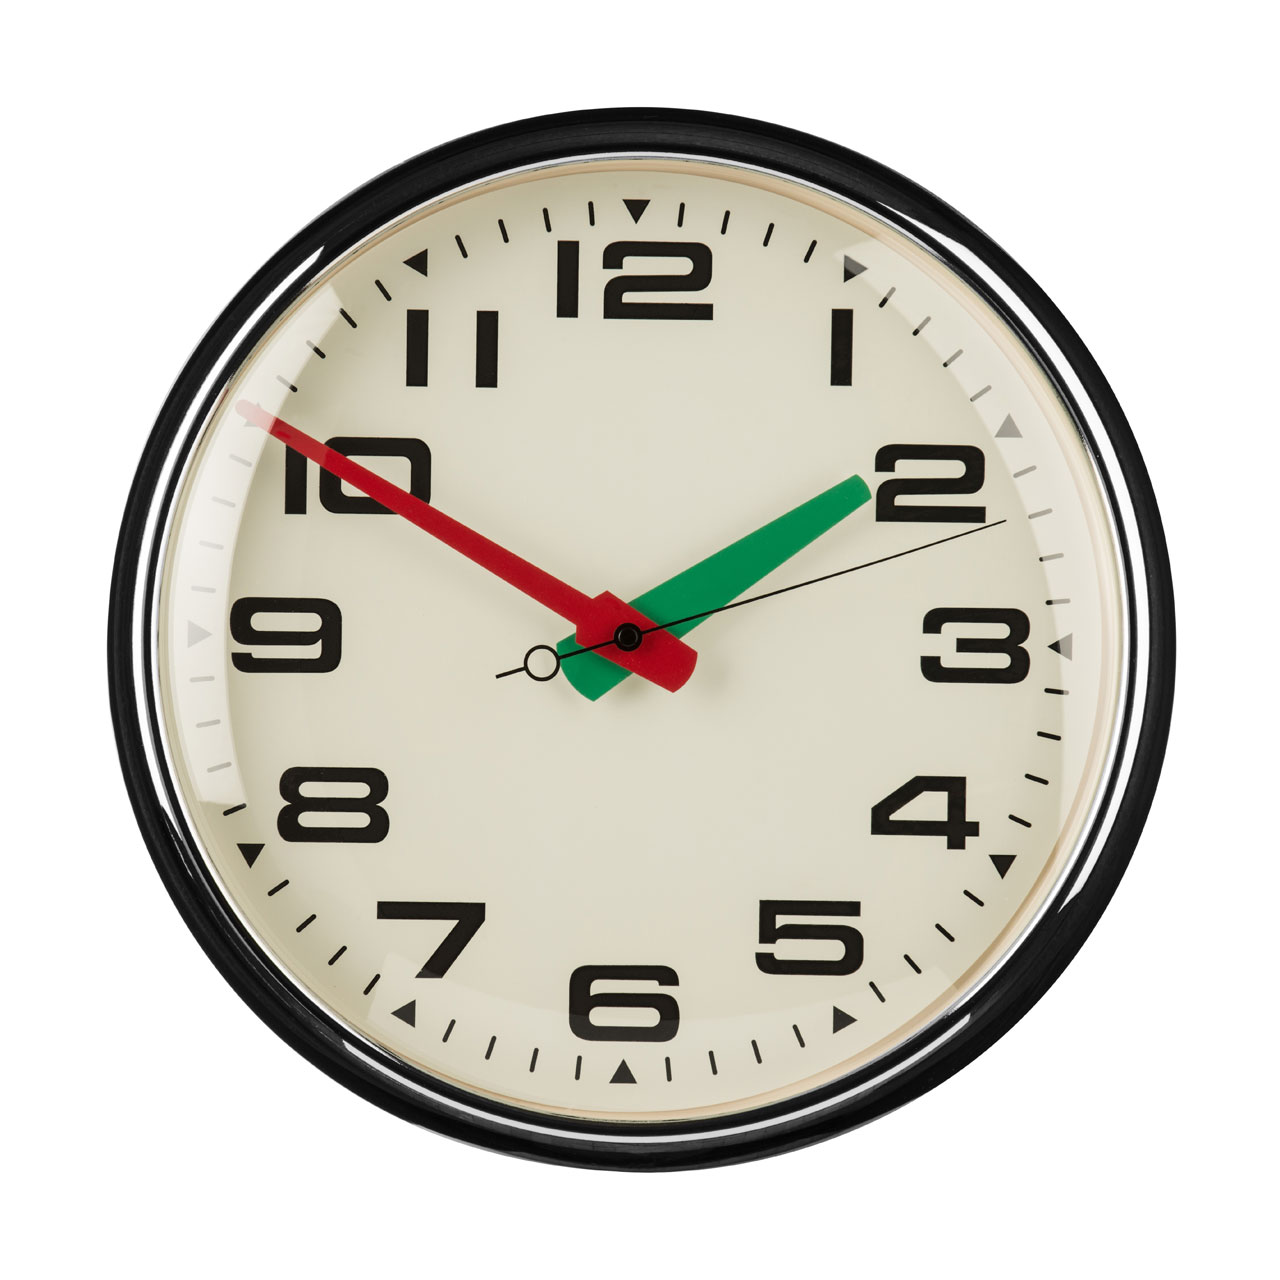 Details About Premier Housewares Retro Wall Clock Chrome Metal Red Green Hands